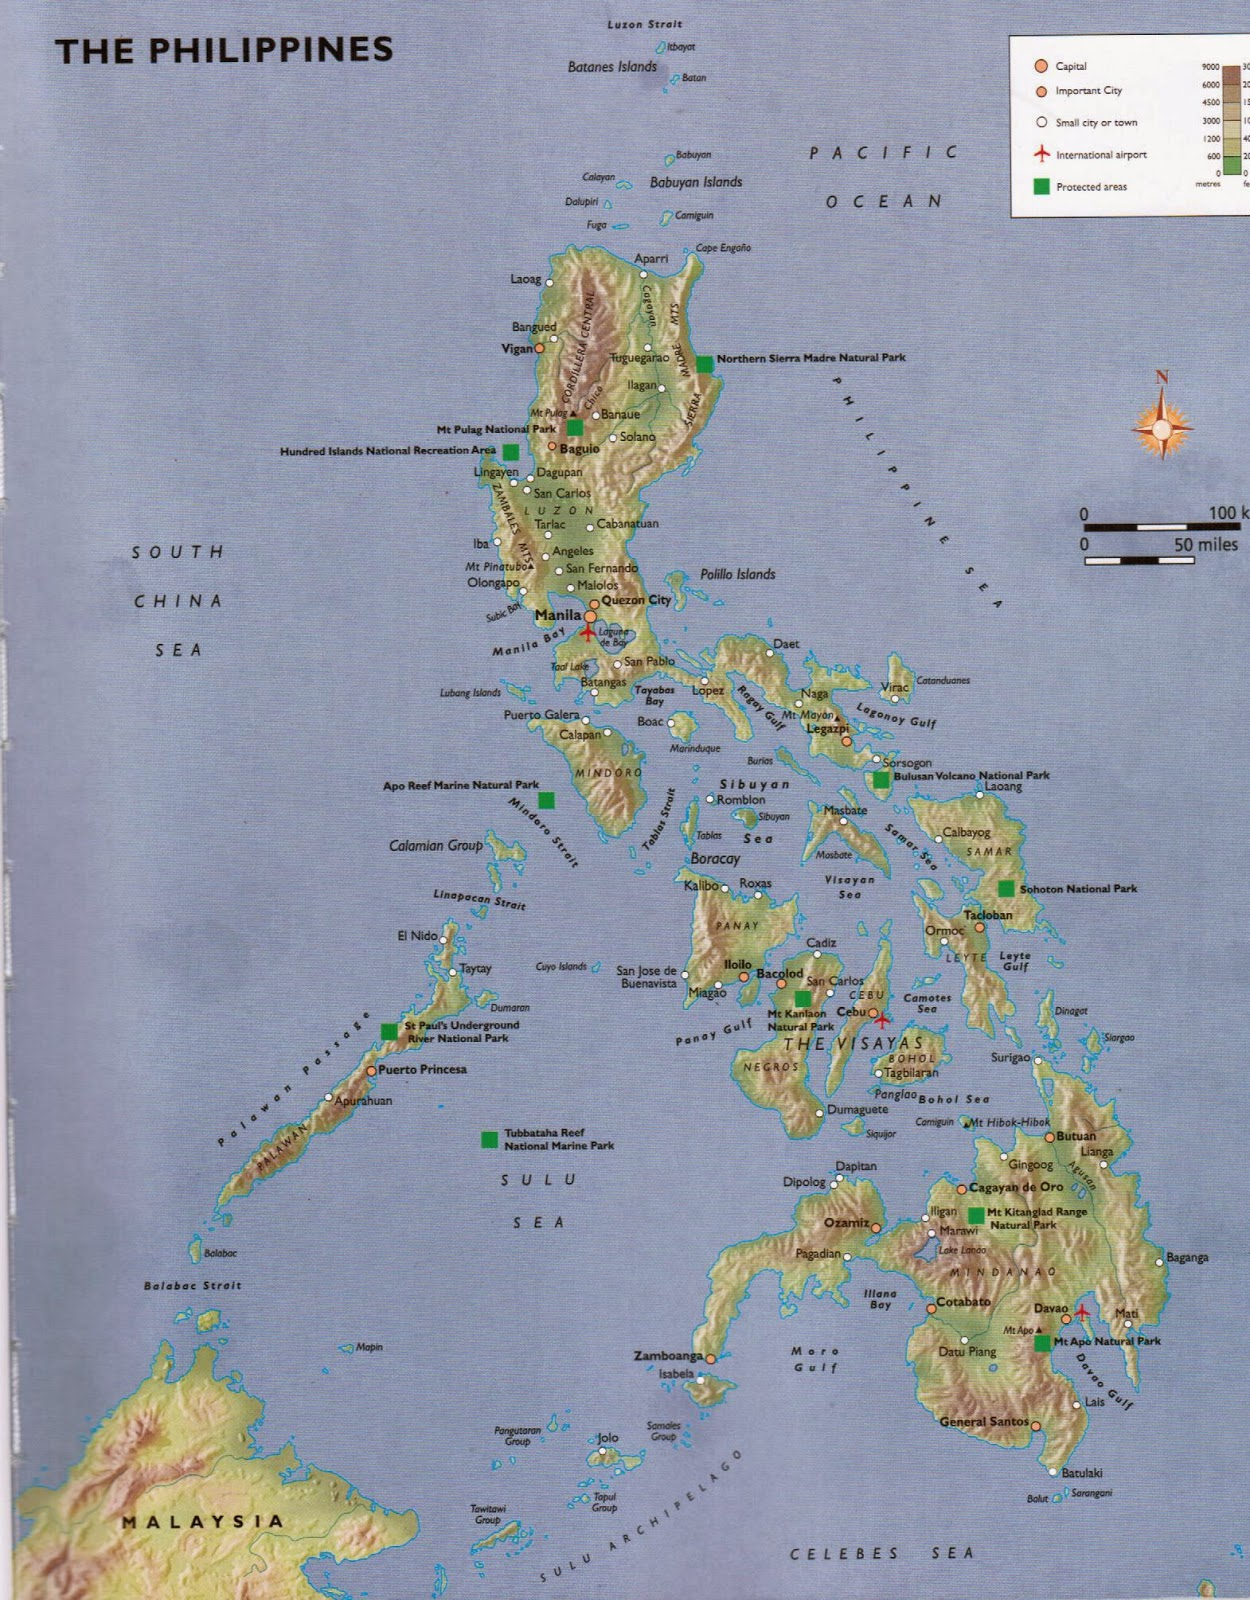 how was the philippine archipelago formed Some 50 million years ago, the archipelago was formed by volcanic eruptions which is how an archipelago is formed island-an island is a piece of land that is surrounded by water island-an island is a piece of land that is surrounded by water.